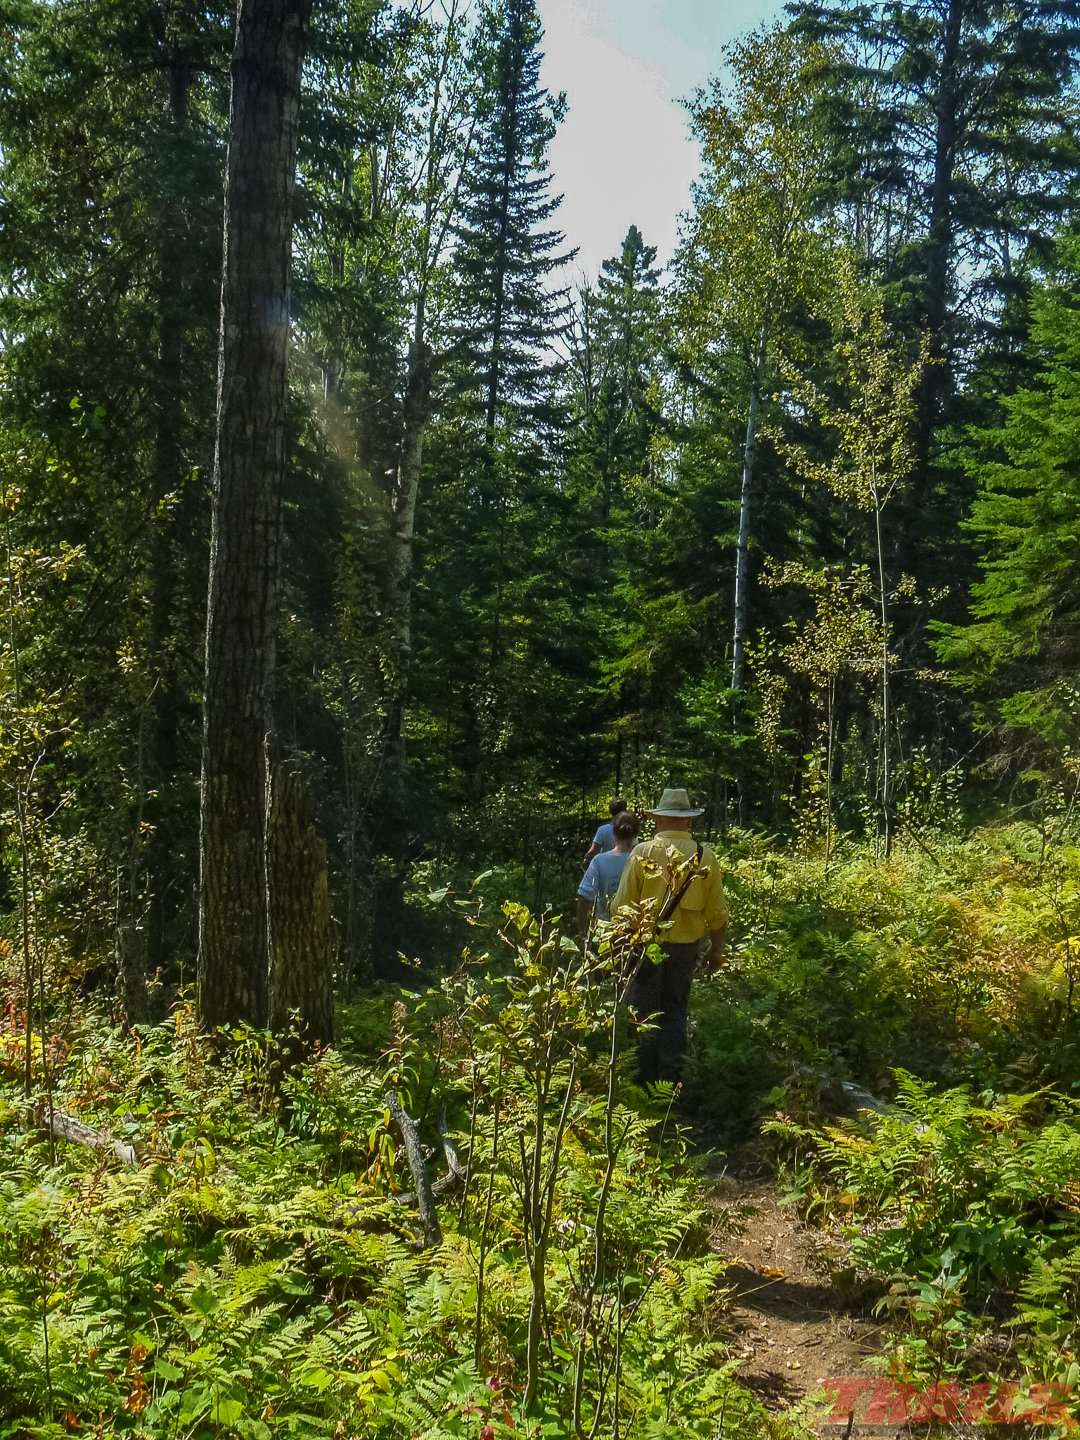 Rugged hiking trails throughout the park at Cascade River State Park